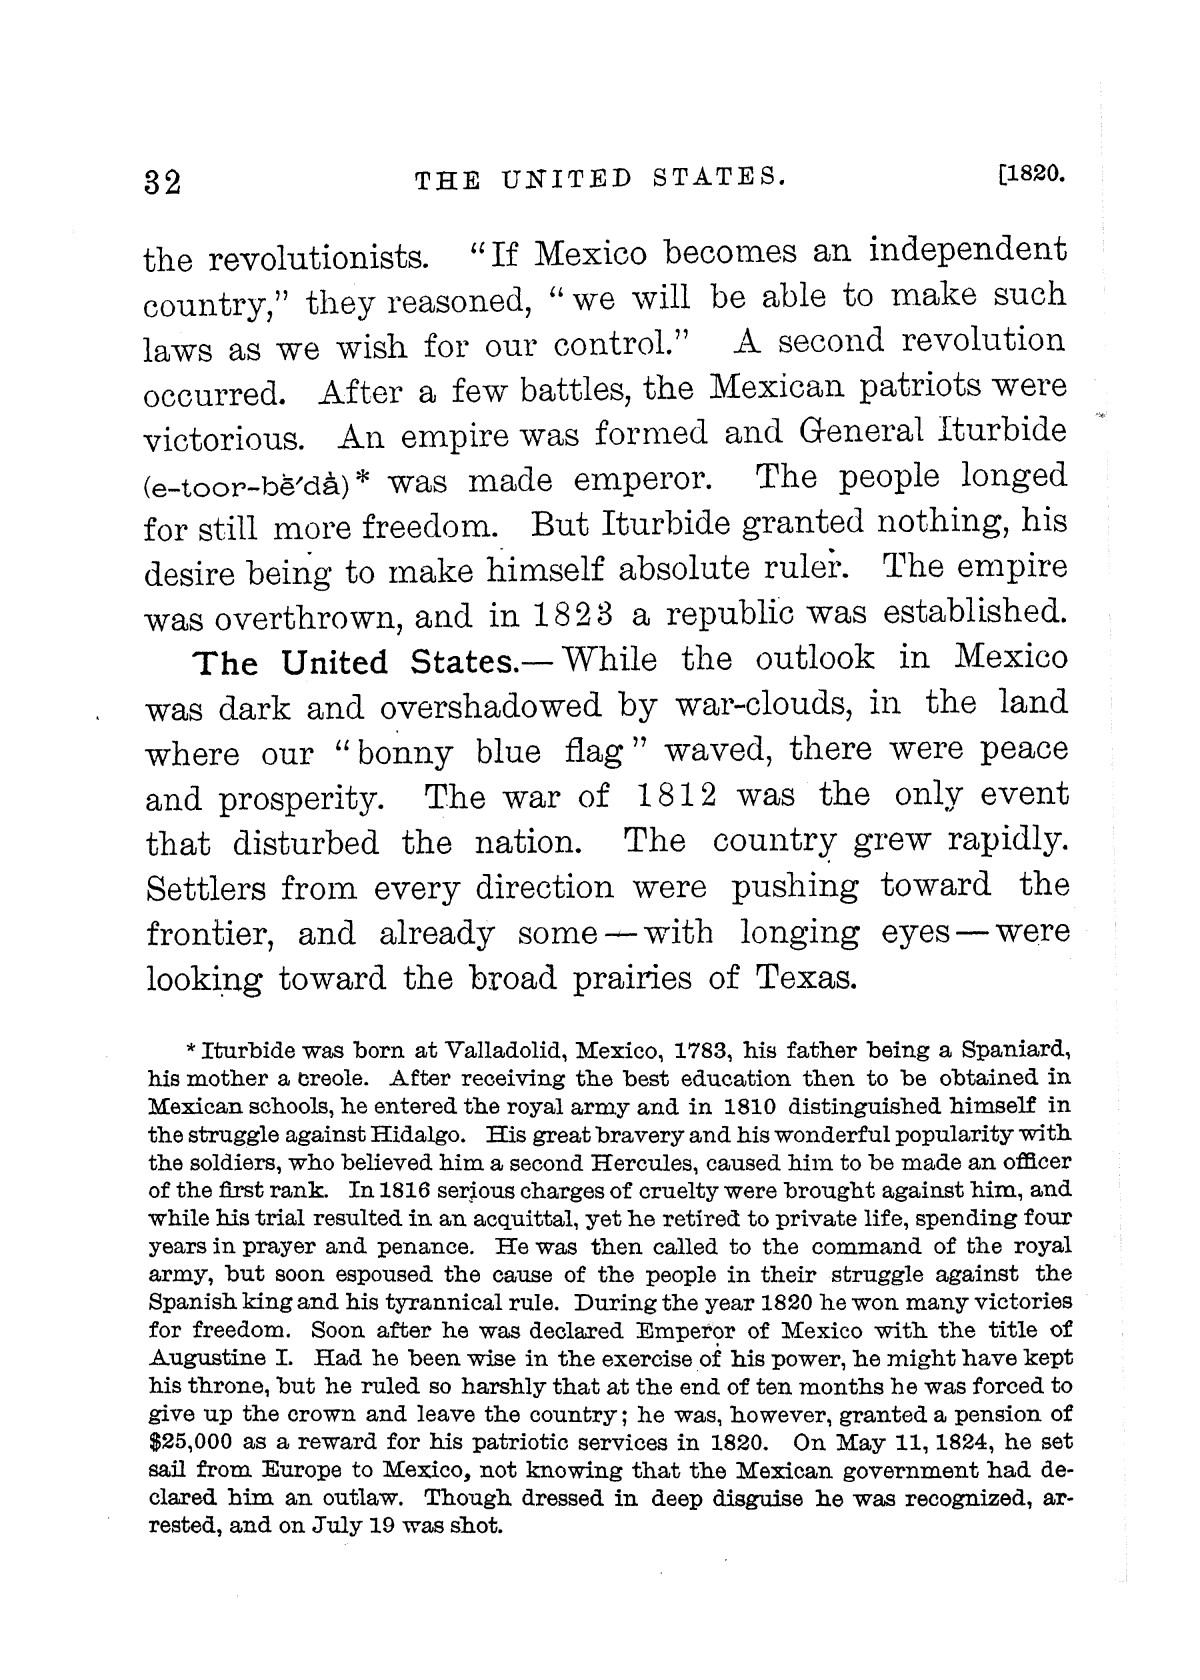 A new history of Texas for schools : also for general reading and for teachers preparing themselves for examination                                                                                                      [Sequence #]: 46 of 412